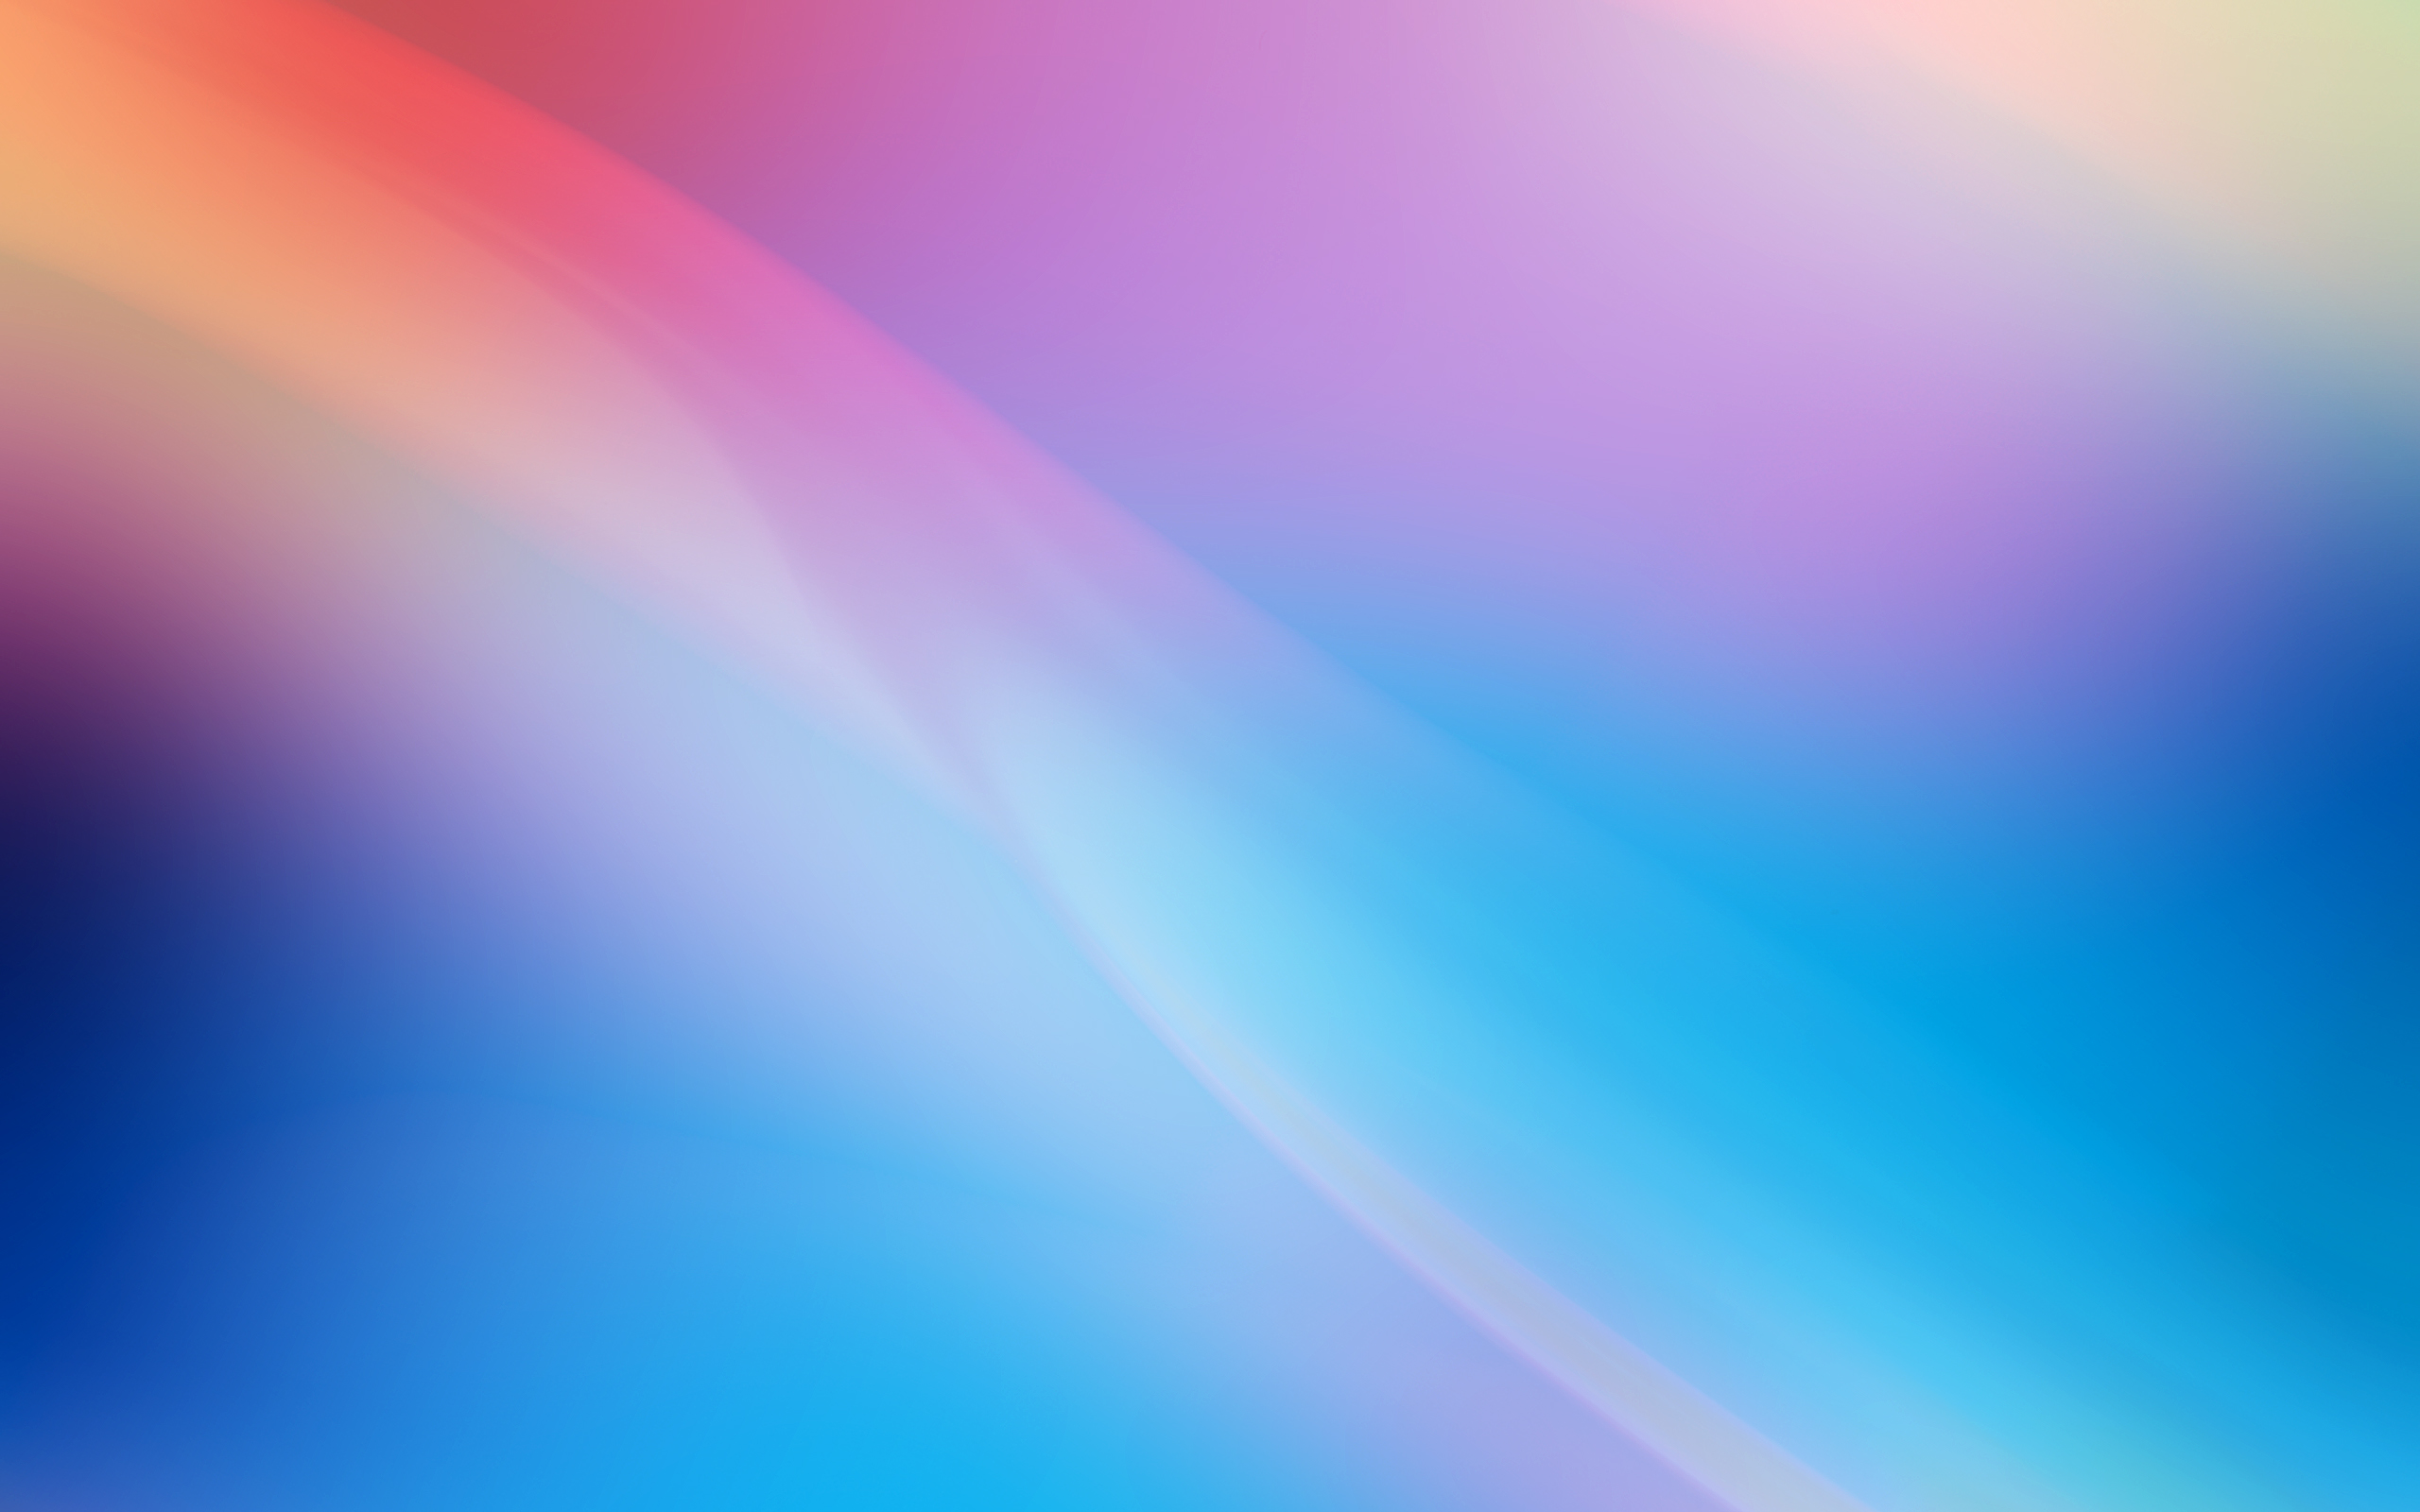 Blue Purple Light and Colors Wallpaper Zon Saja 2560x1600